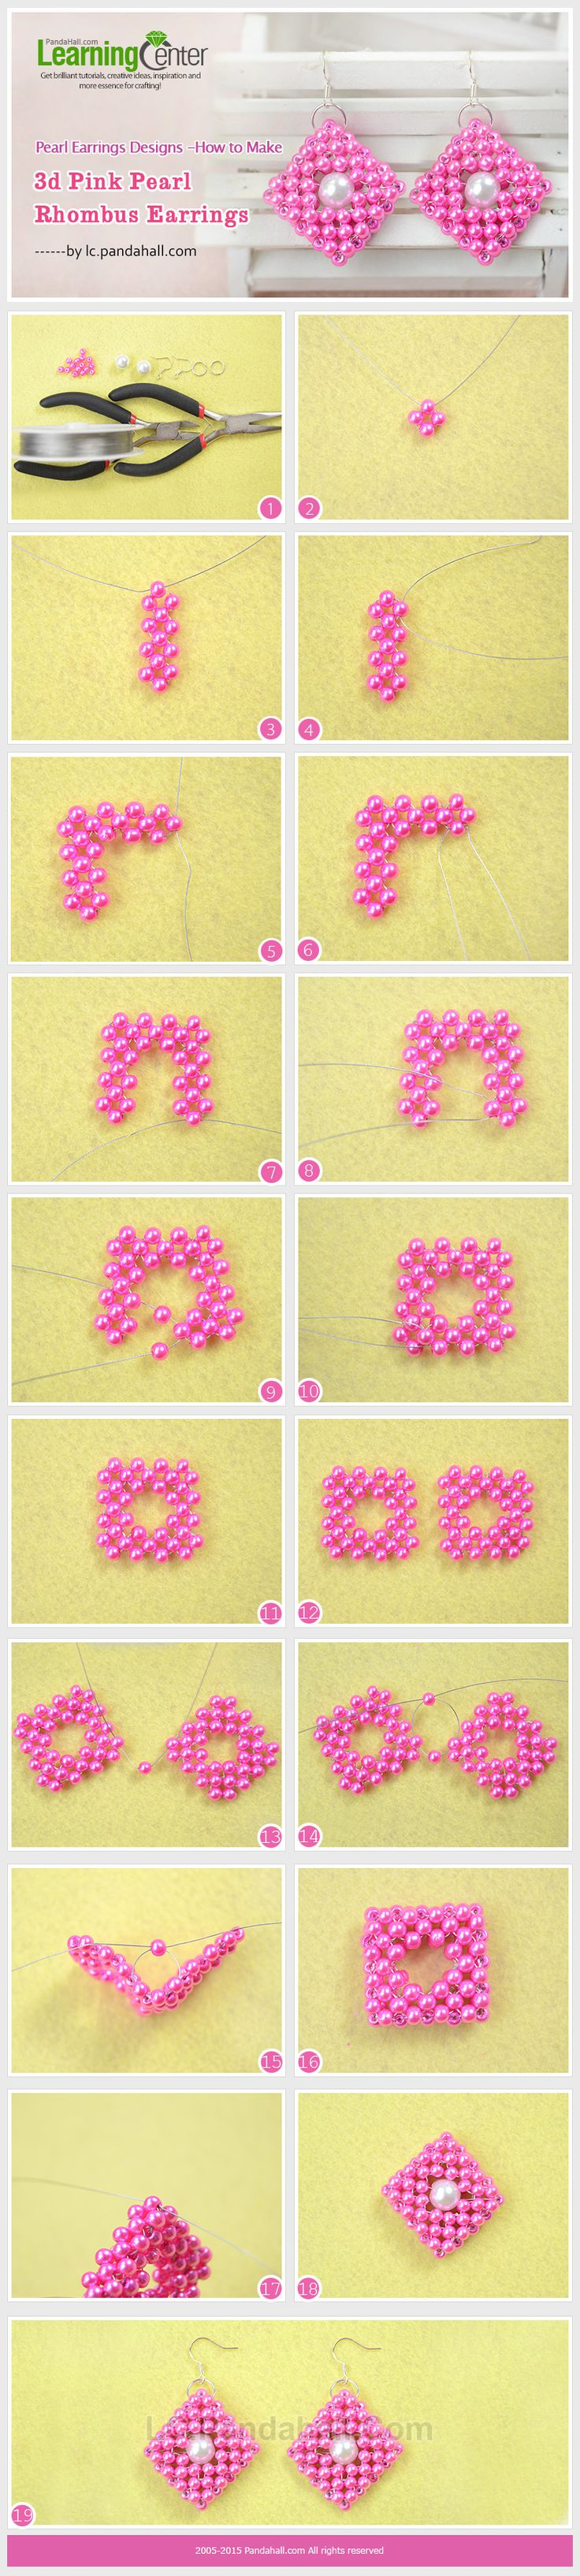 Pearl Earrings Designs -How to Make 3d Pink Pearl Rhombus Earrings ~ Seed Bead Tutorials